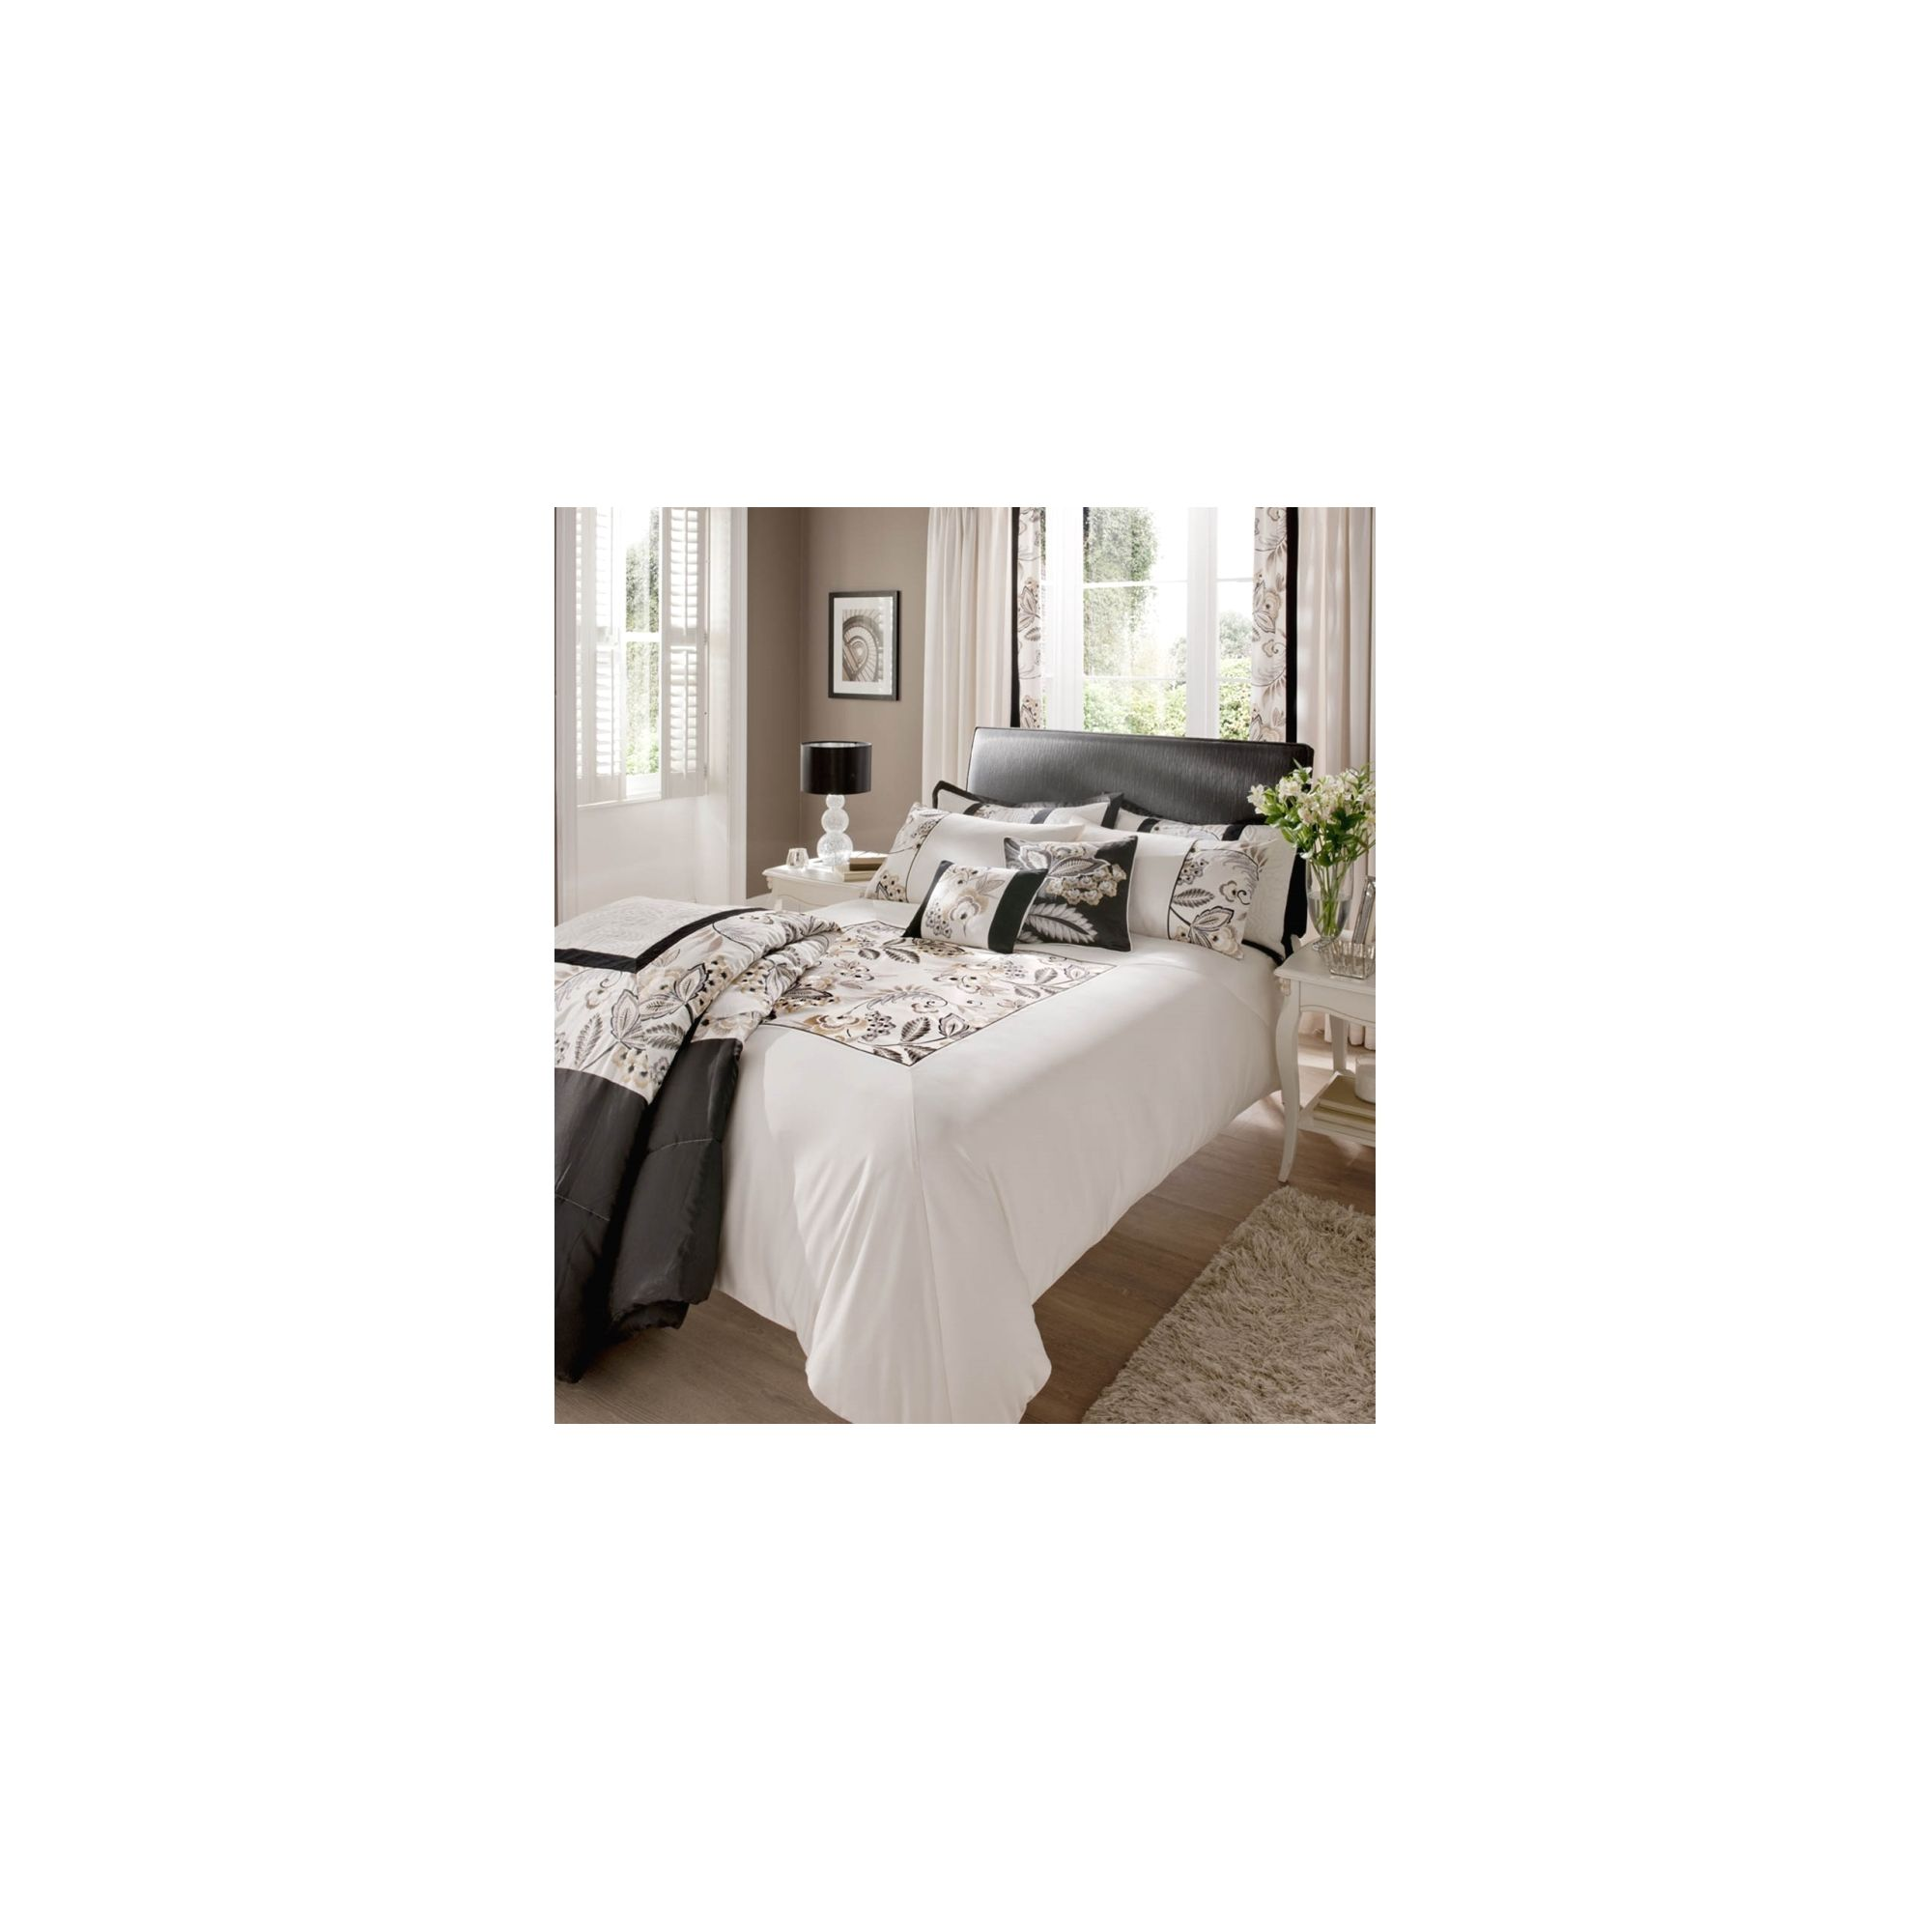 Home and garden bedroom tesco cosmo kingsize size duvet cover set black special offers Tesco home bedroom furniture